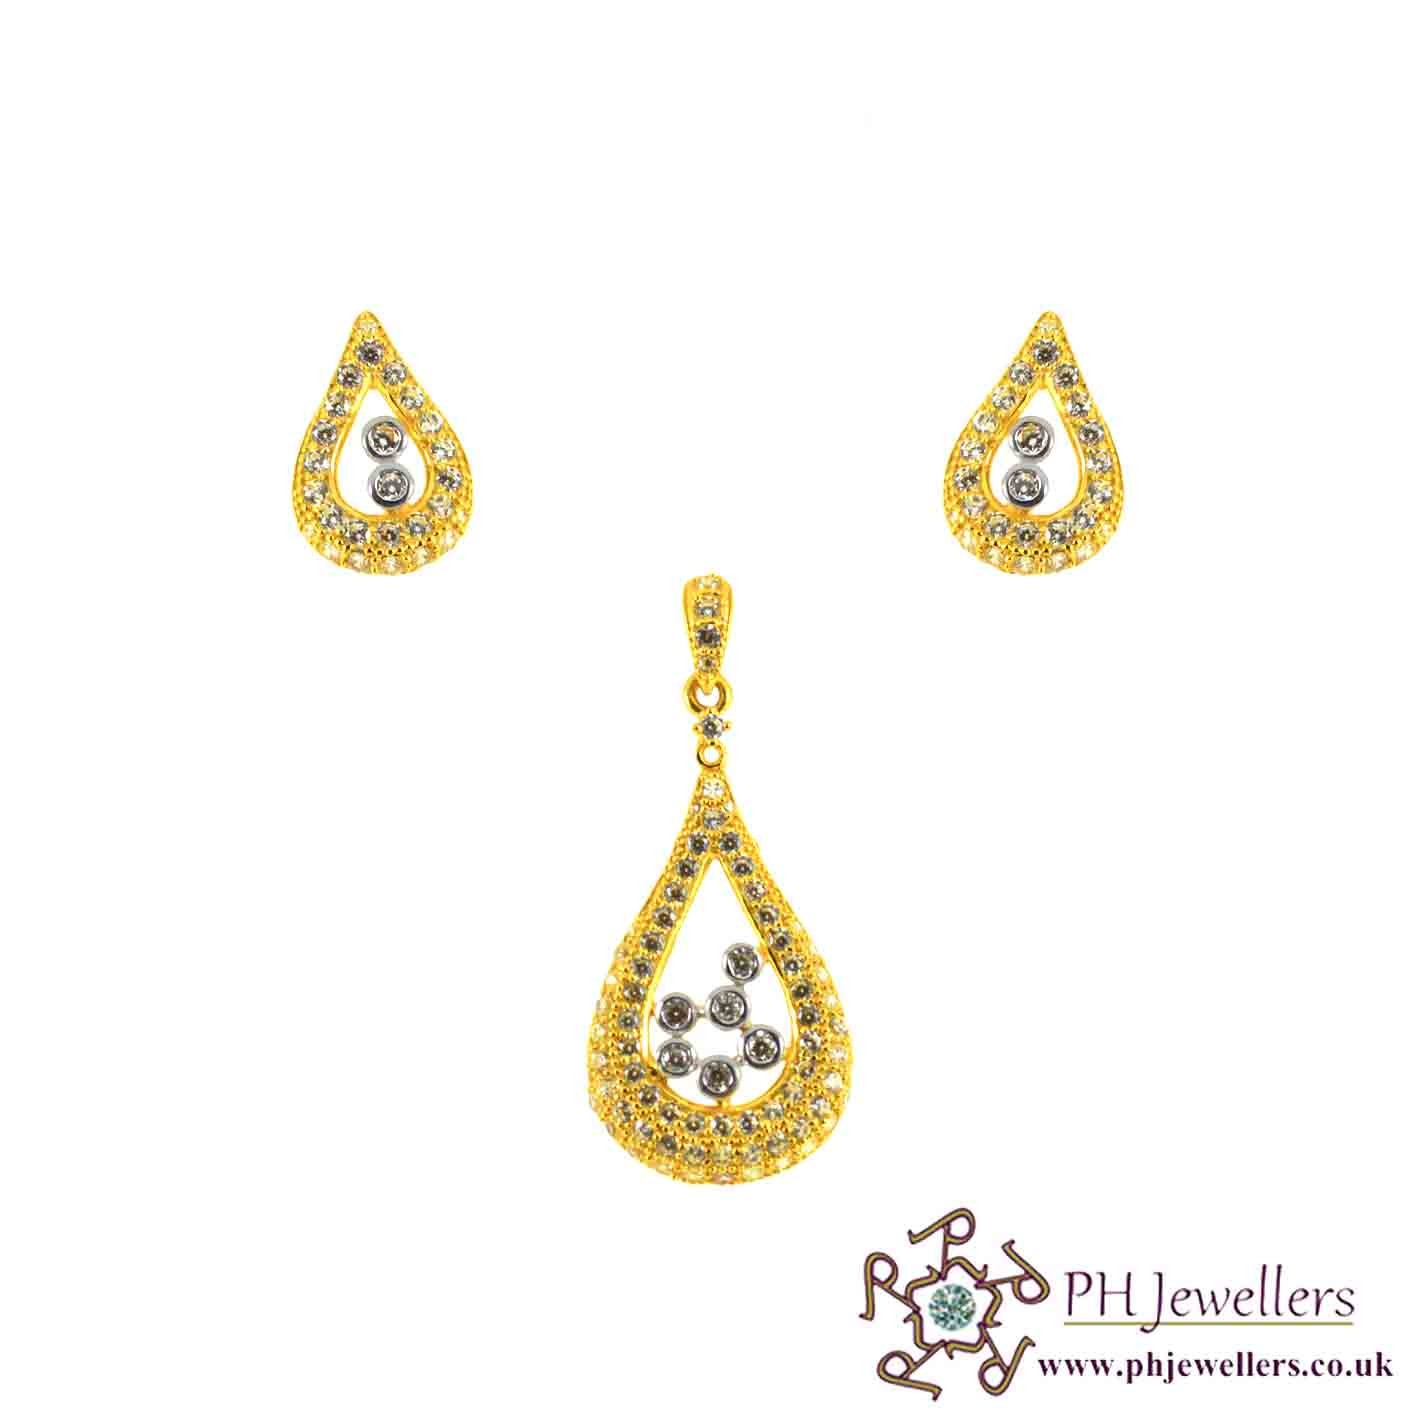 22ct 916 Hallmark Yellow Gold Tear Drop Rhodium Pendant Set CZ PS22